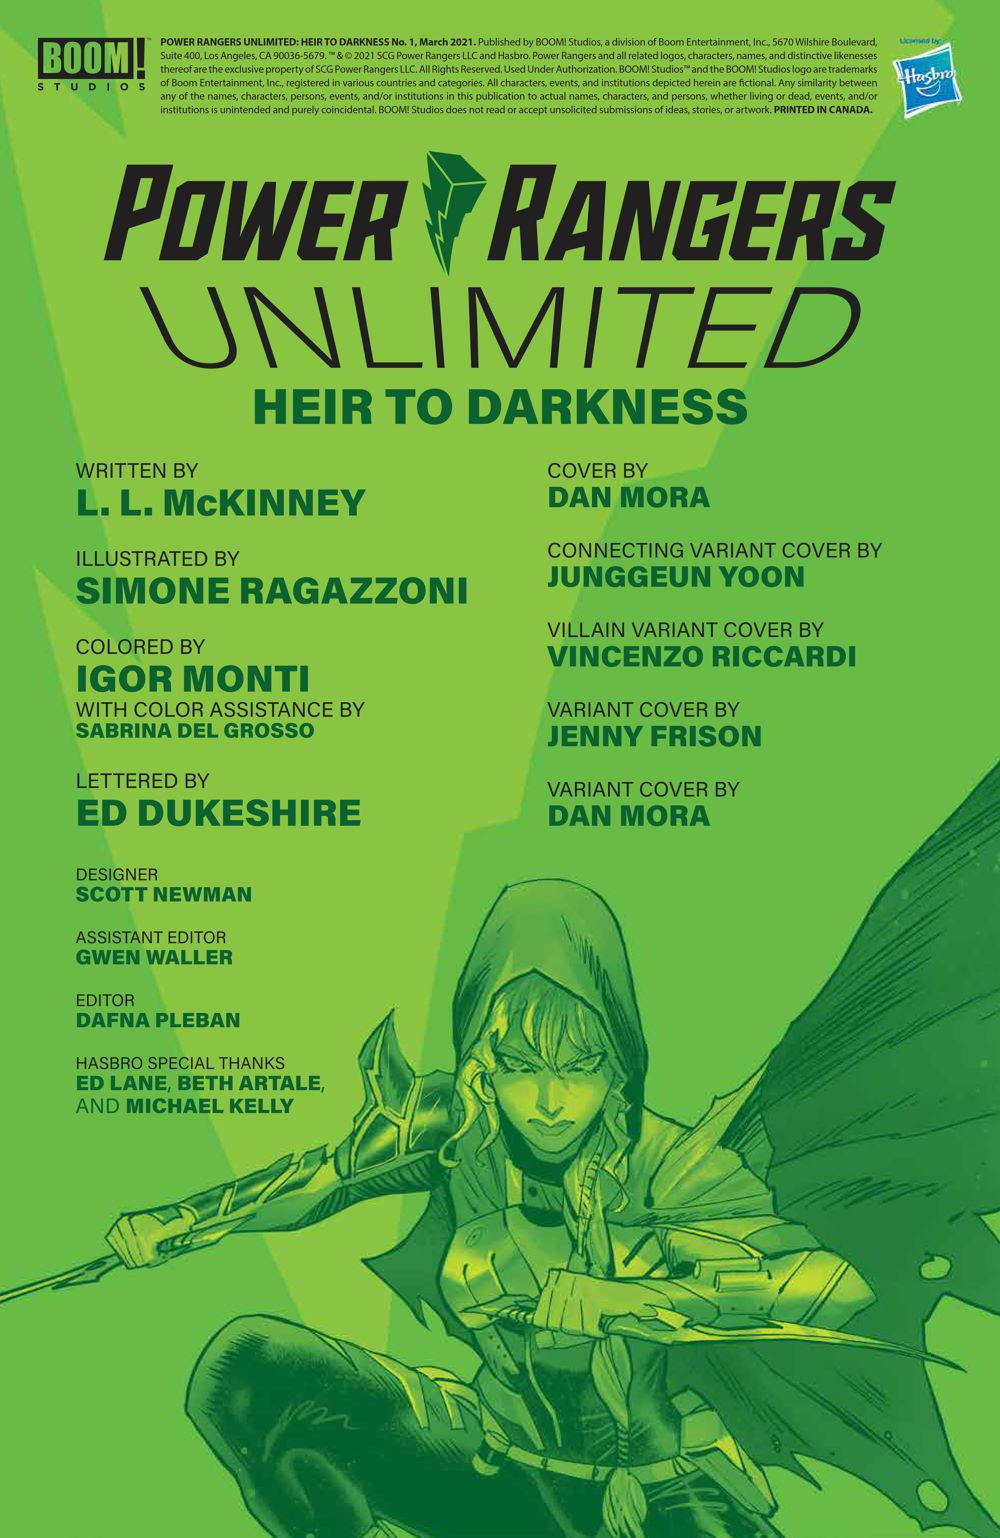 PR_Unlimited_HeirDarkness_001_PRESS_2 ComicList Previews: POWER RANGERS UNLIMITED HEIR TO THE DARKNESS #1